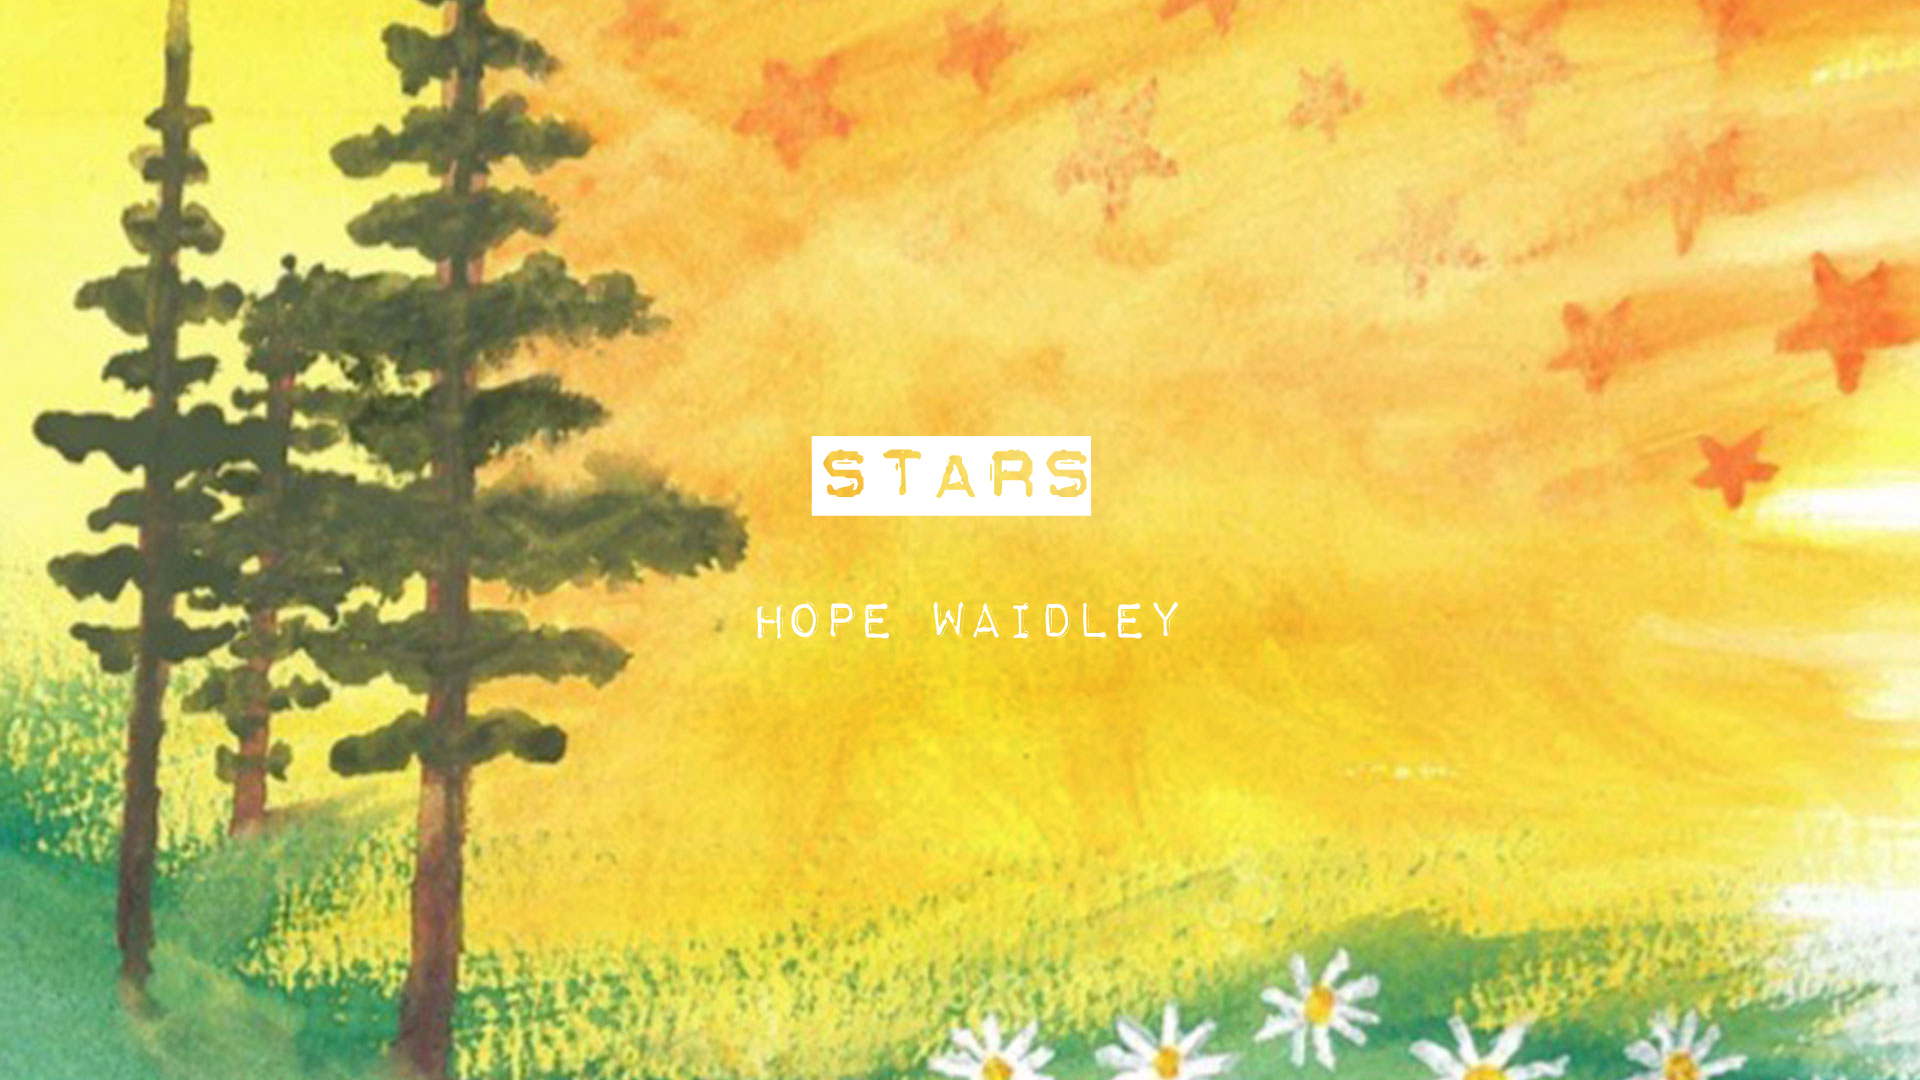 STARS The new single. Available now.